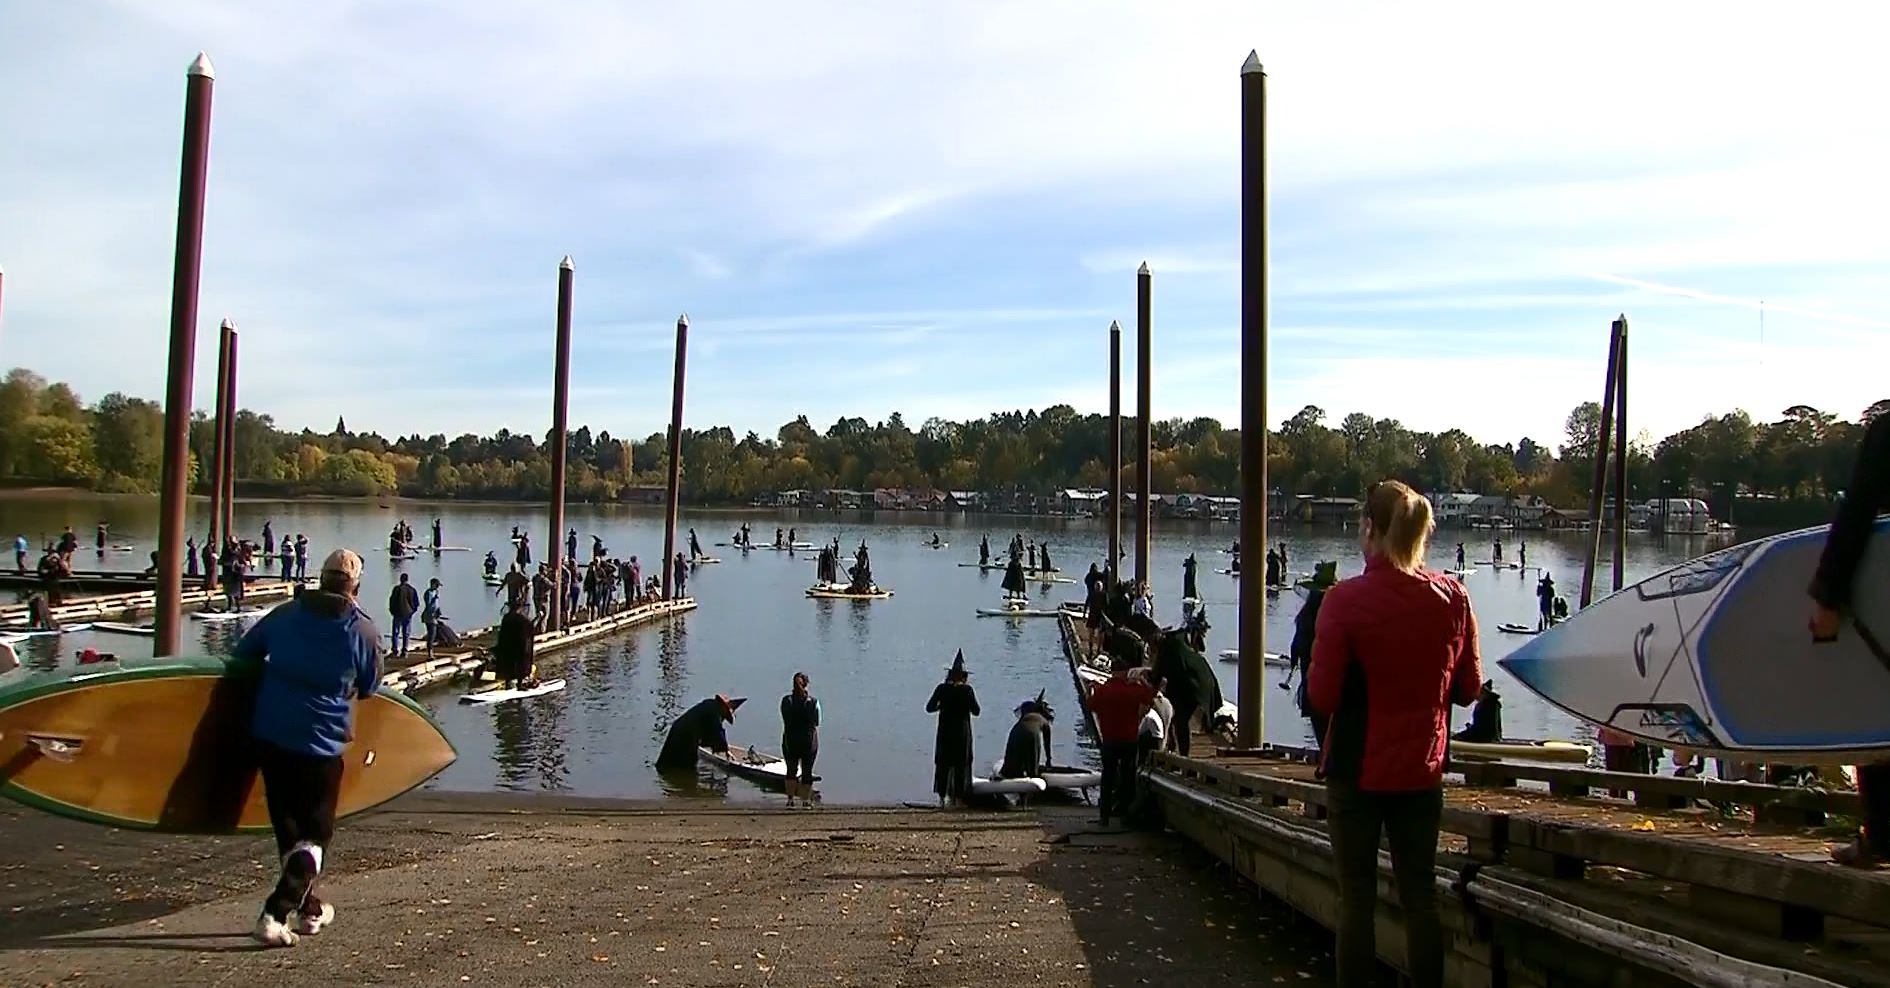 100s of Oregon 'witches' paddle down river, minus the brooms